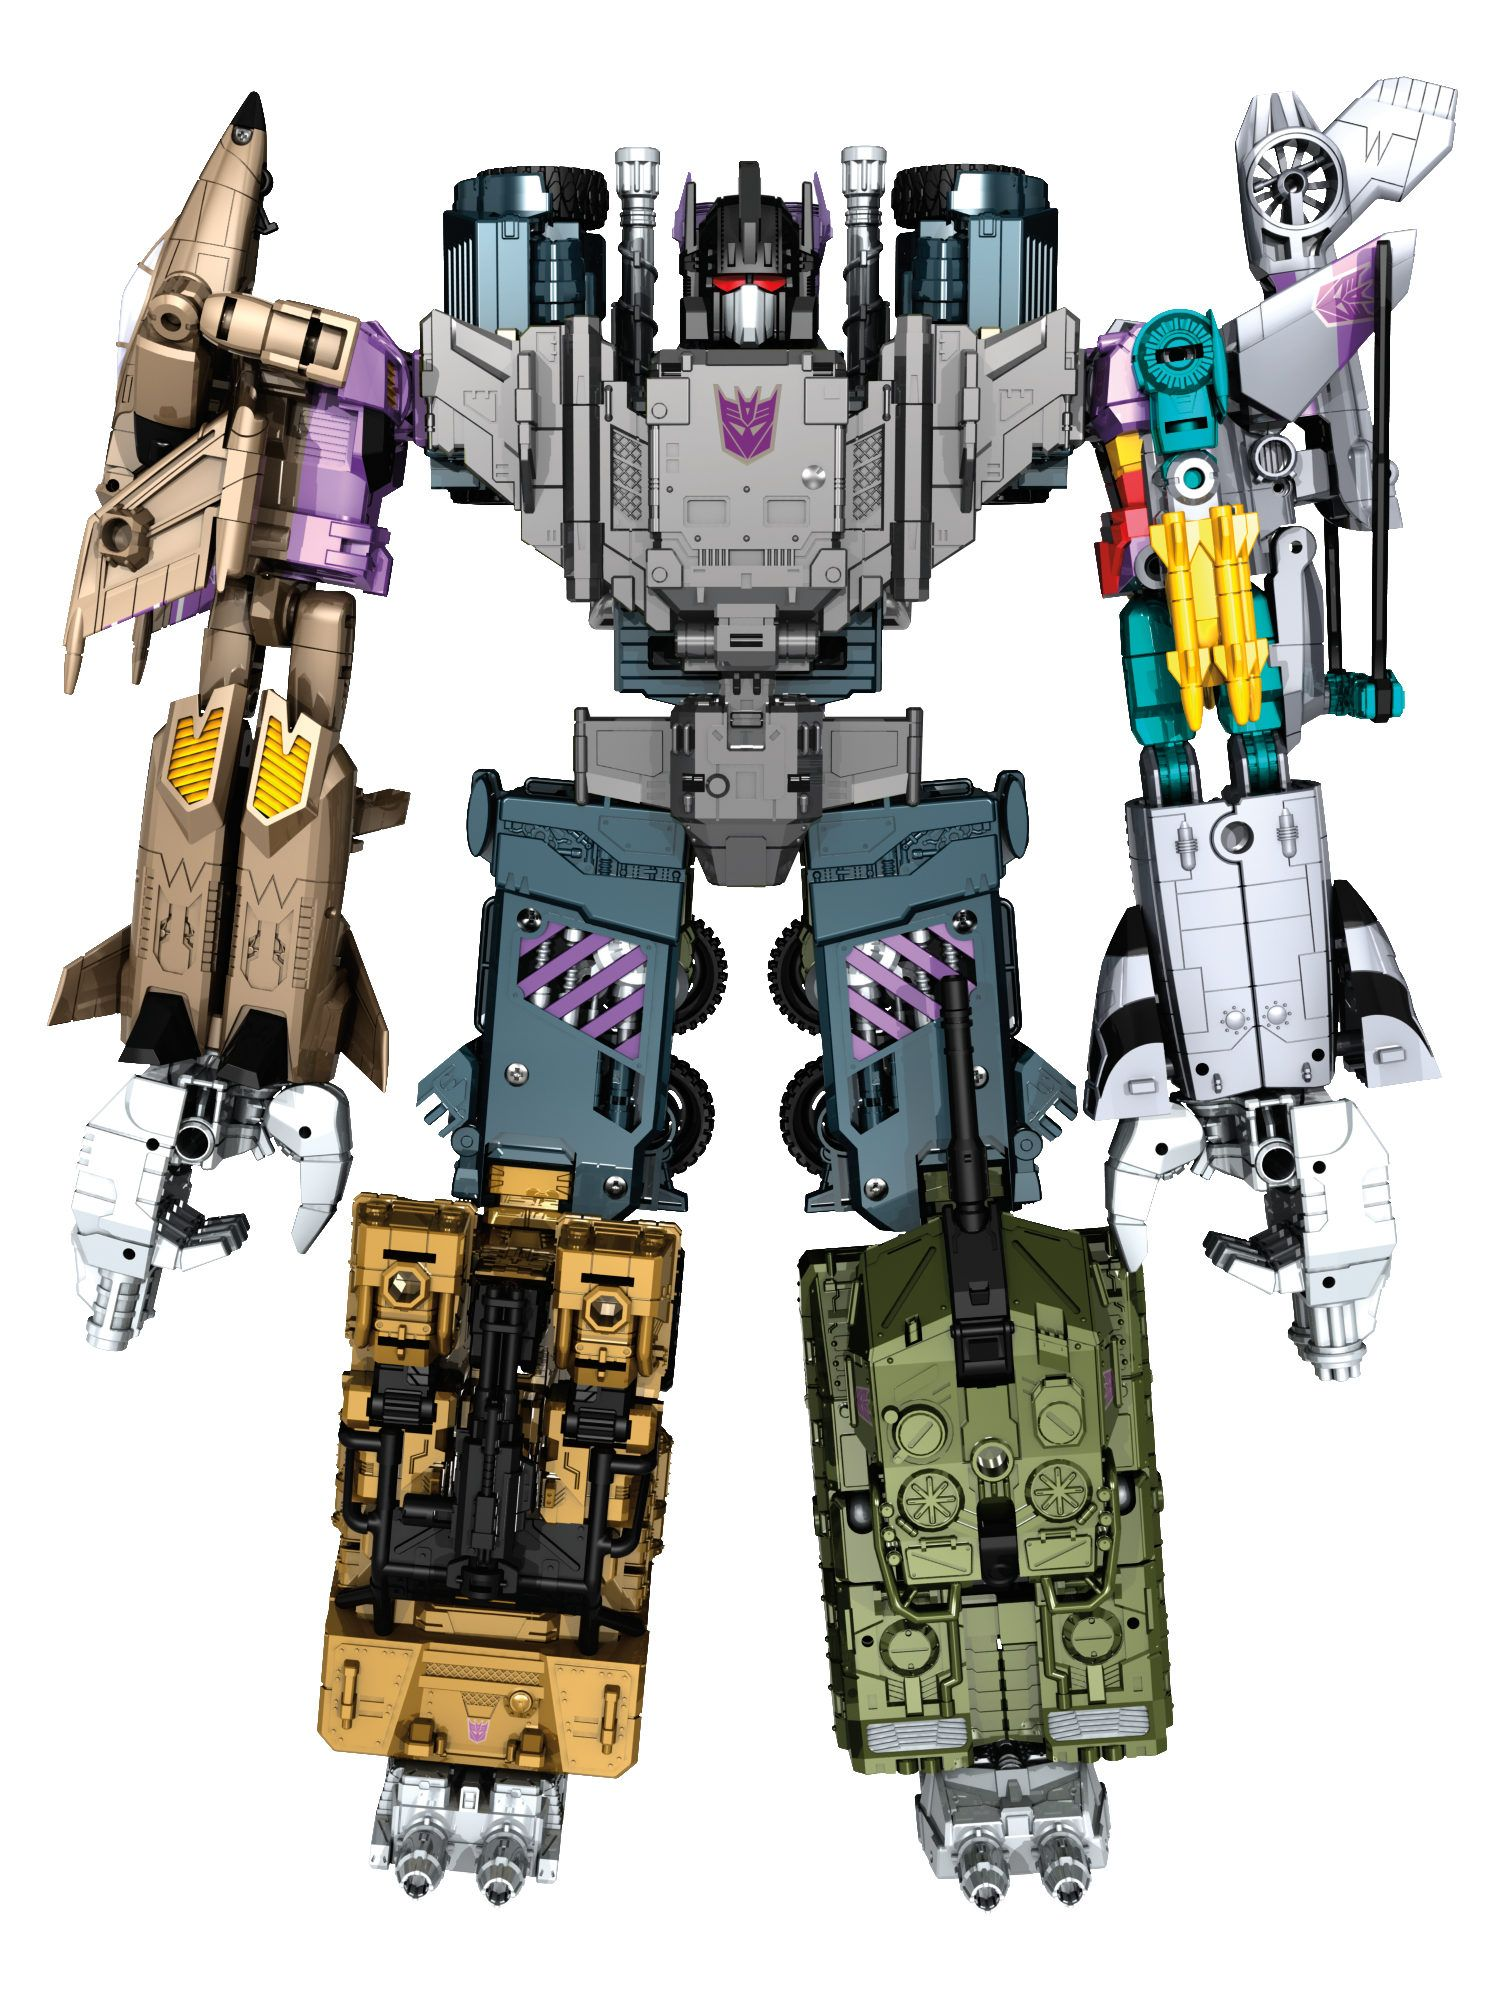 Combiner wars combaticons official images transformer world 2005 tfw2005 com